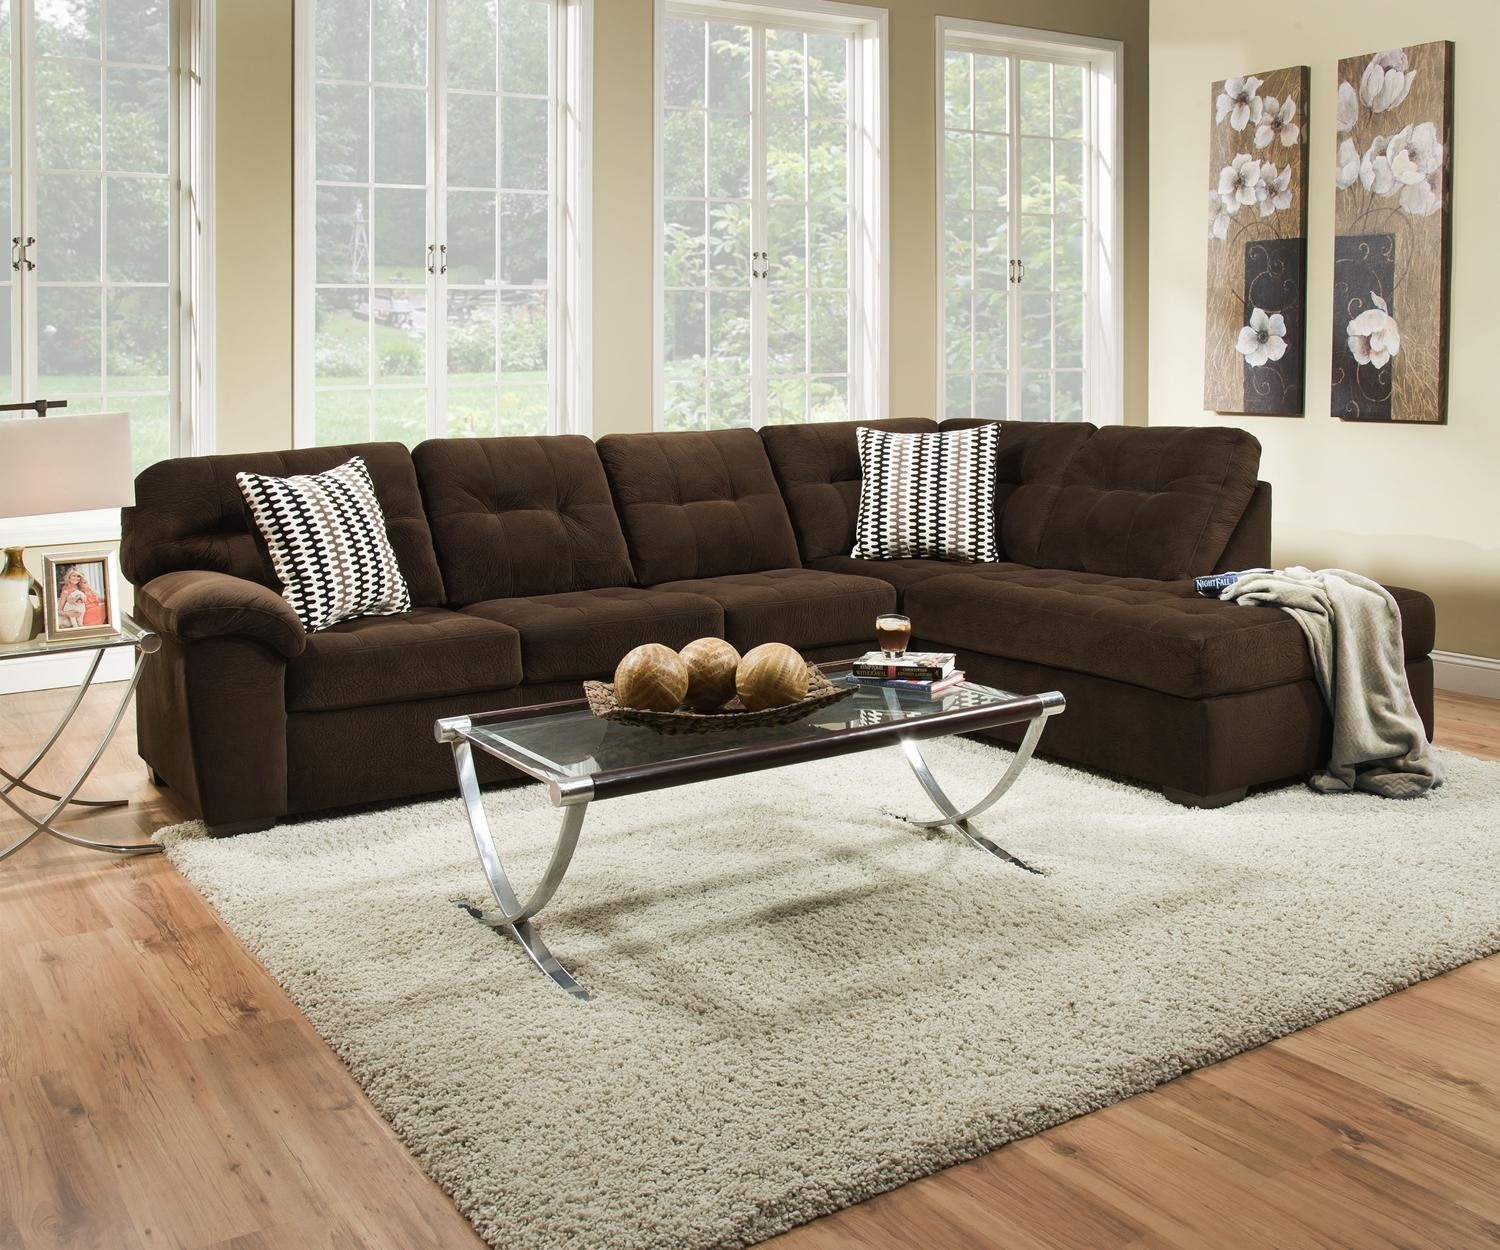 Furniture: Simmons Sectional For Comfortable Seating — Threestems Intended For Simmons Sectional Sofas (Image 2 of 20)